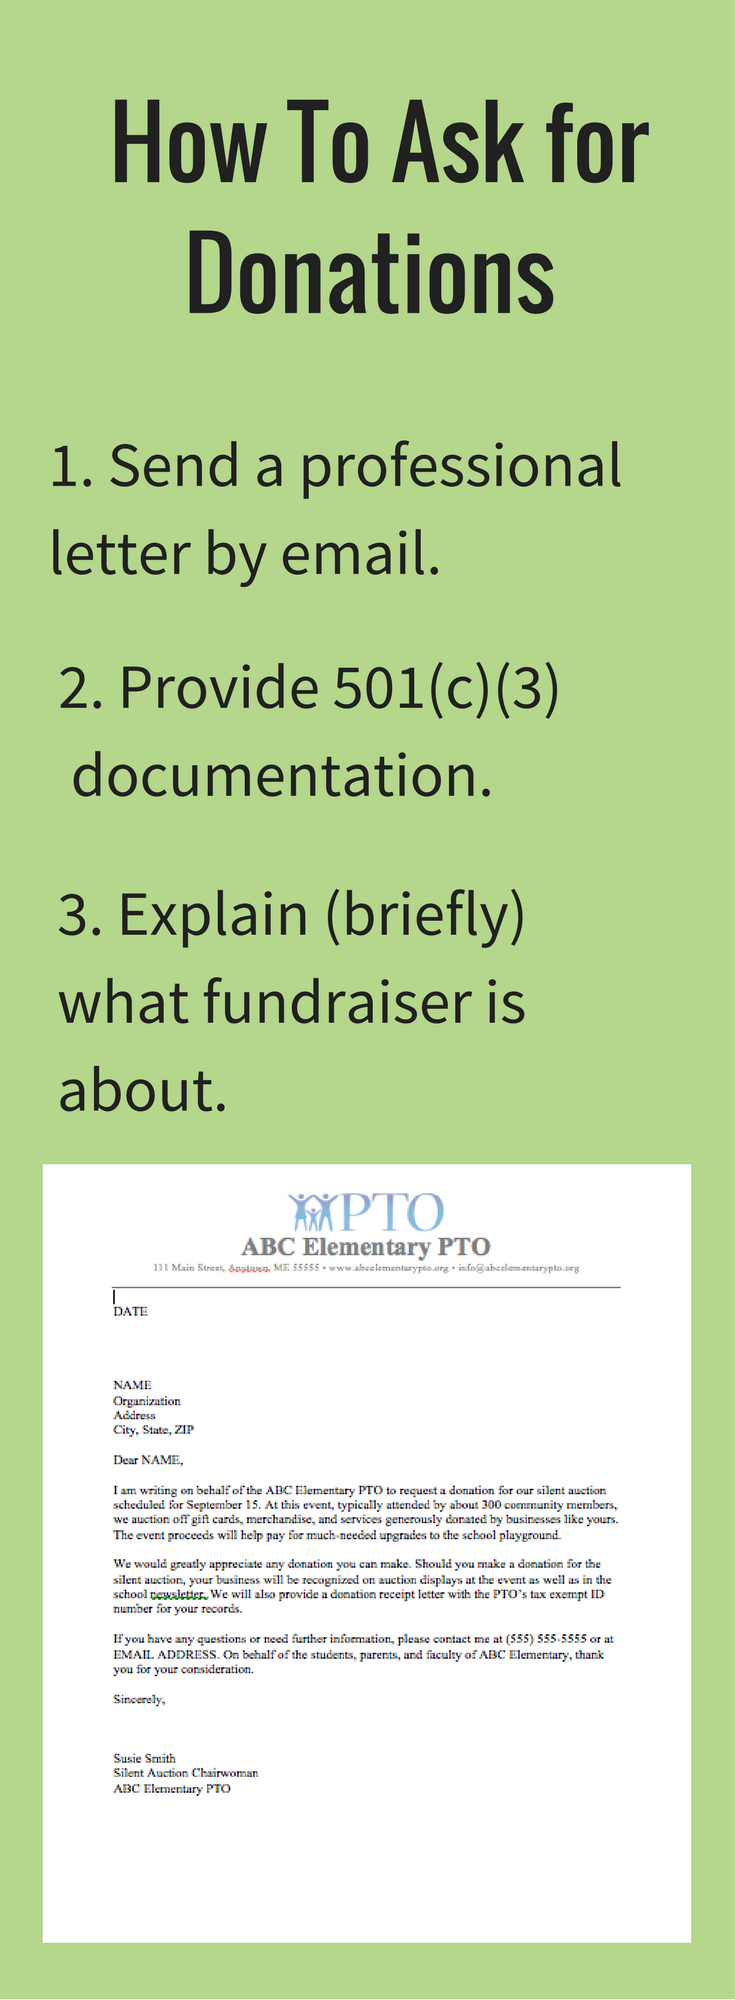 Pta Fundraising Letter Template - Download Our Free Donation Letter Request Template